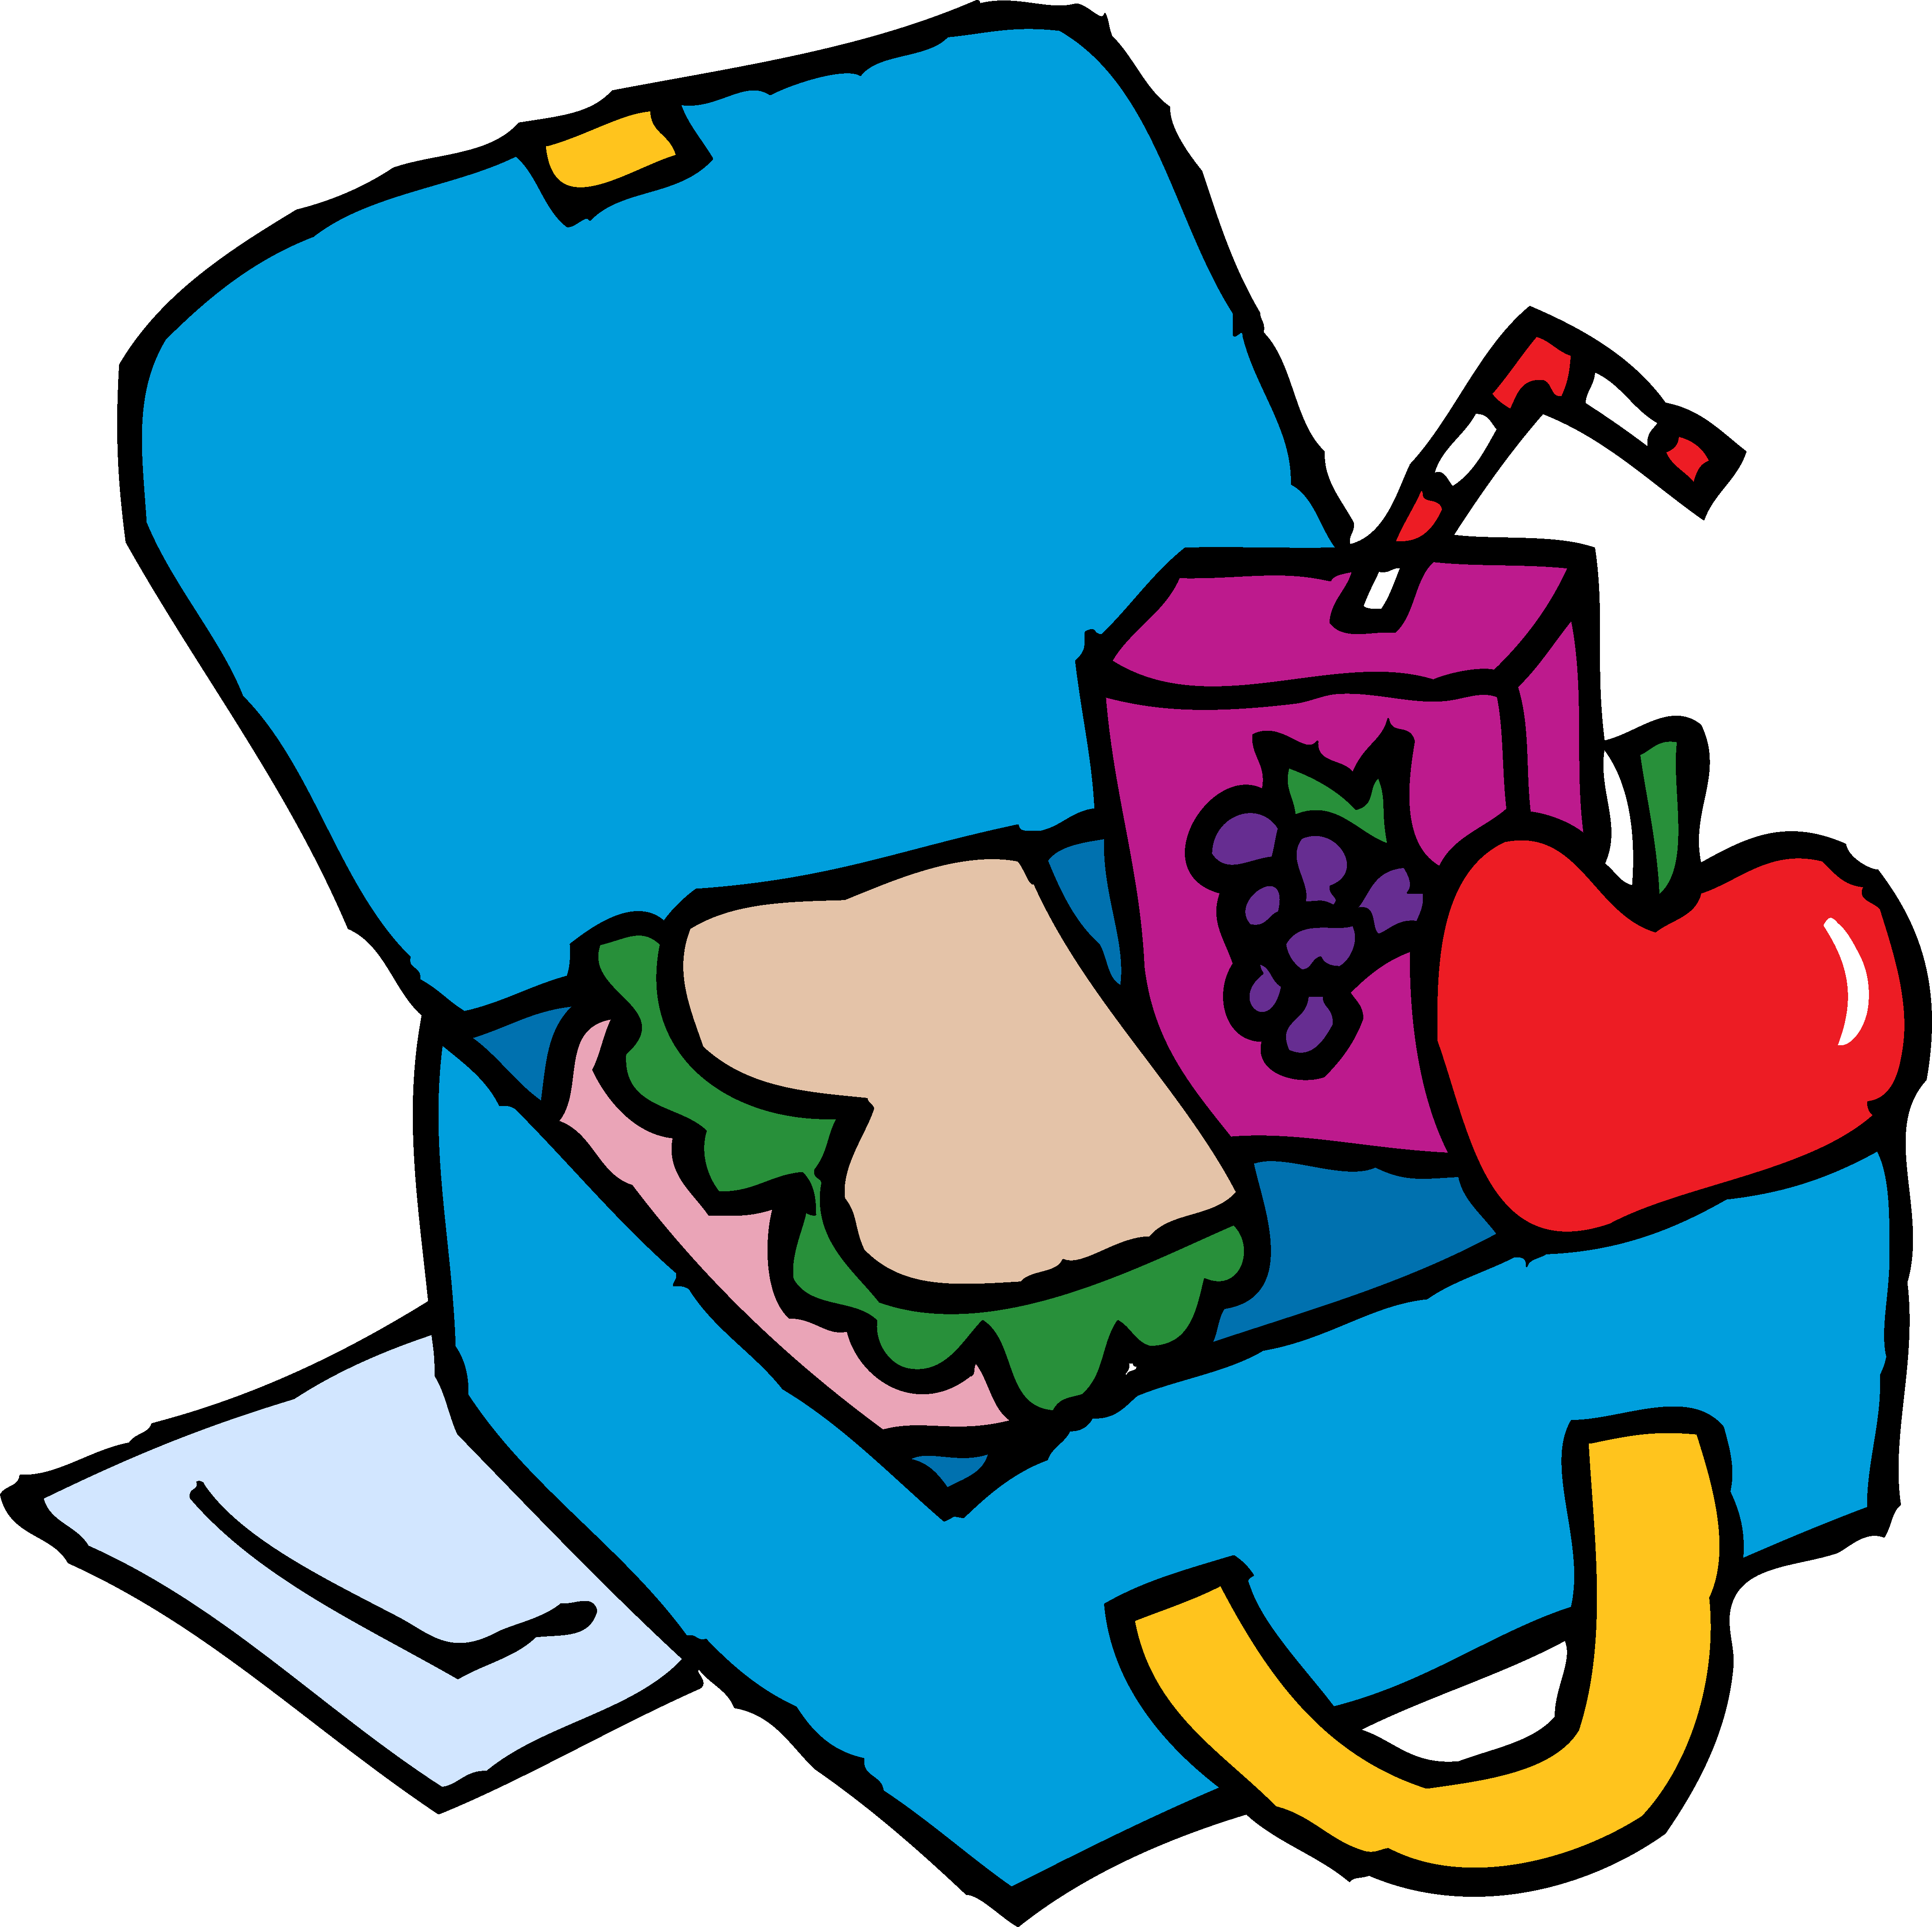 Clipart put lunch box away image freeuse library Lunch Clipart - 50 cliparts image freeuse library